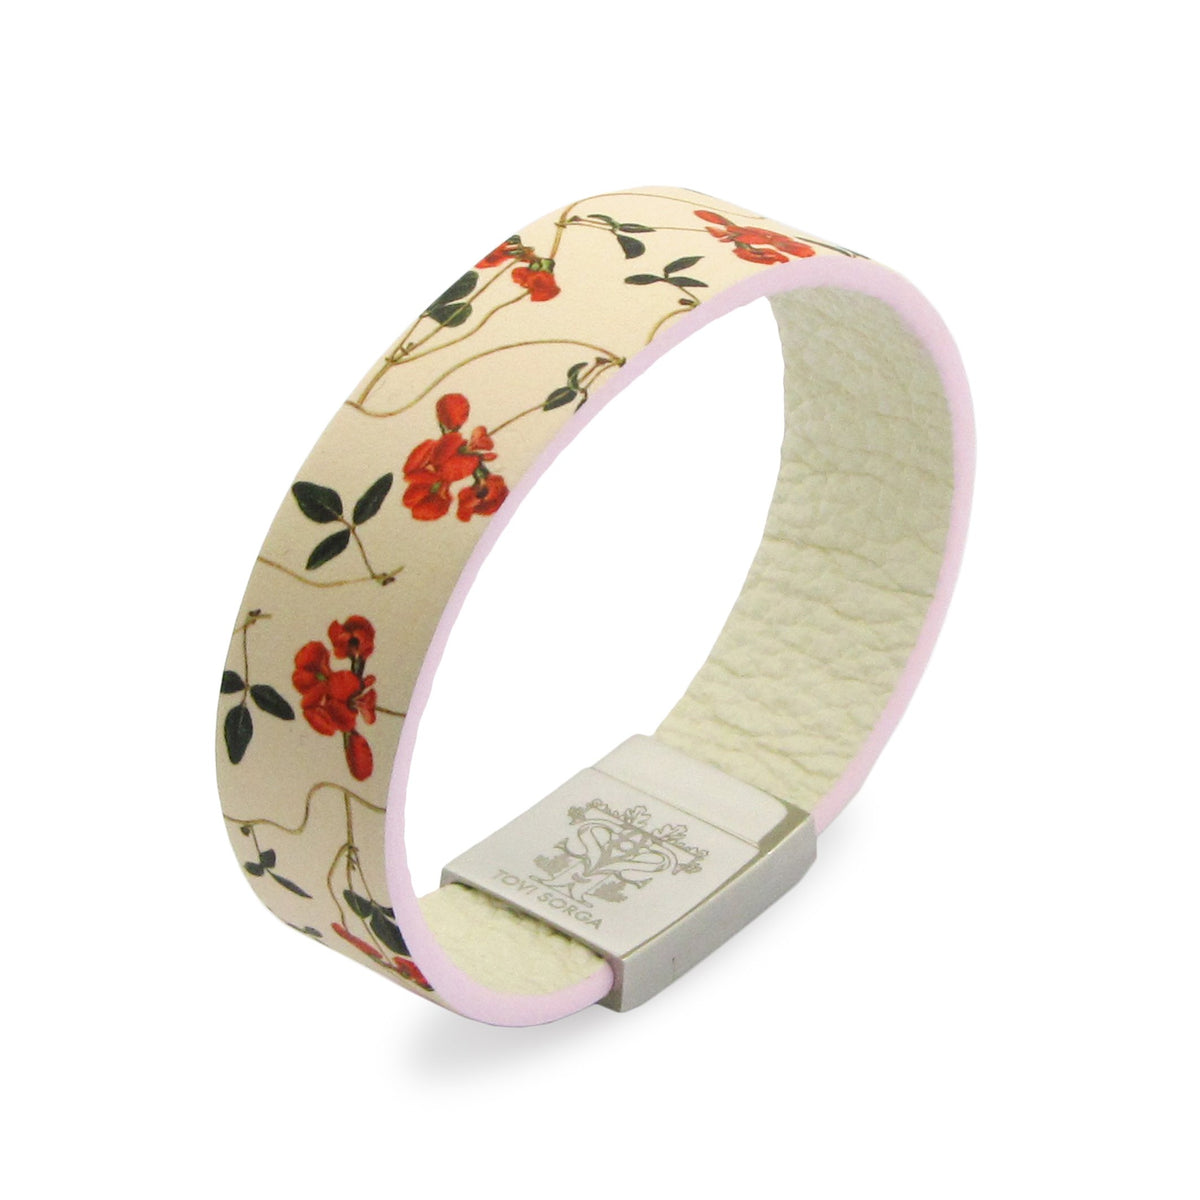 Leather Contactless Payment Bracelet: Sweet Pea Contactless Payment Bracelet Tovi Sorga Extra-Small Pink